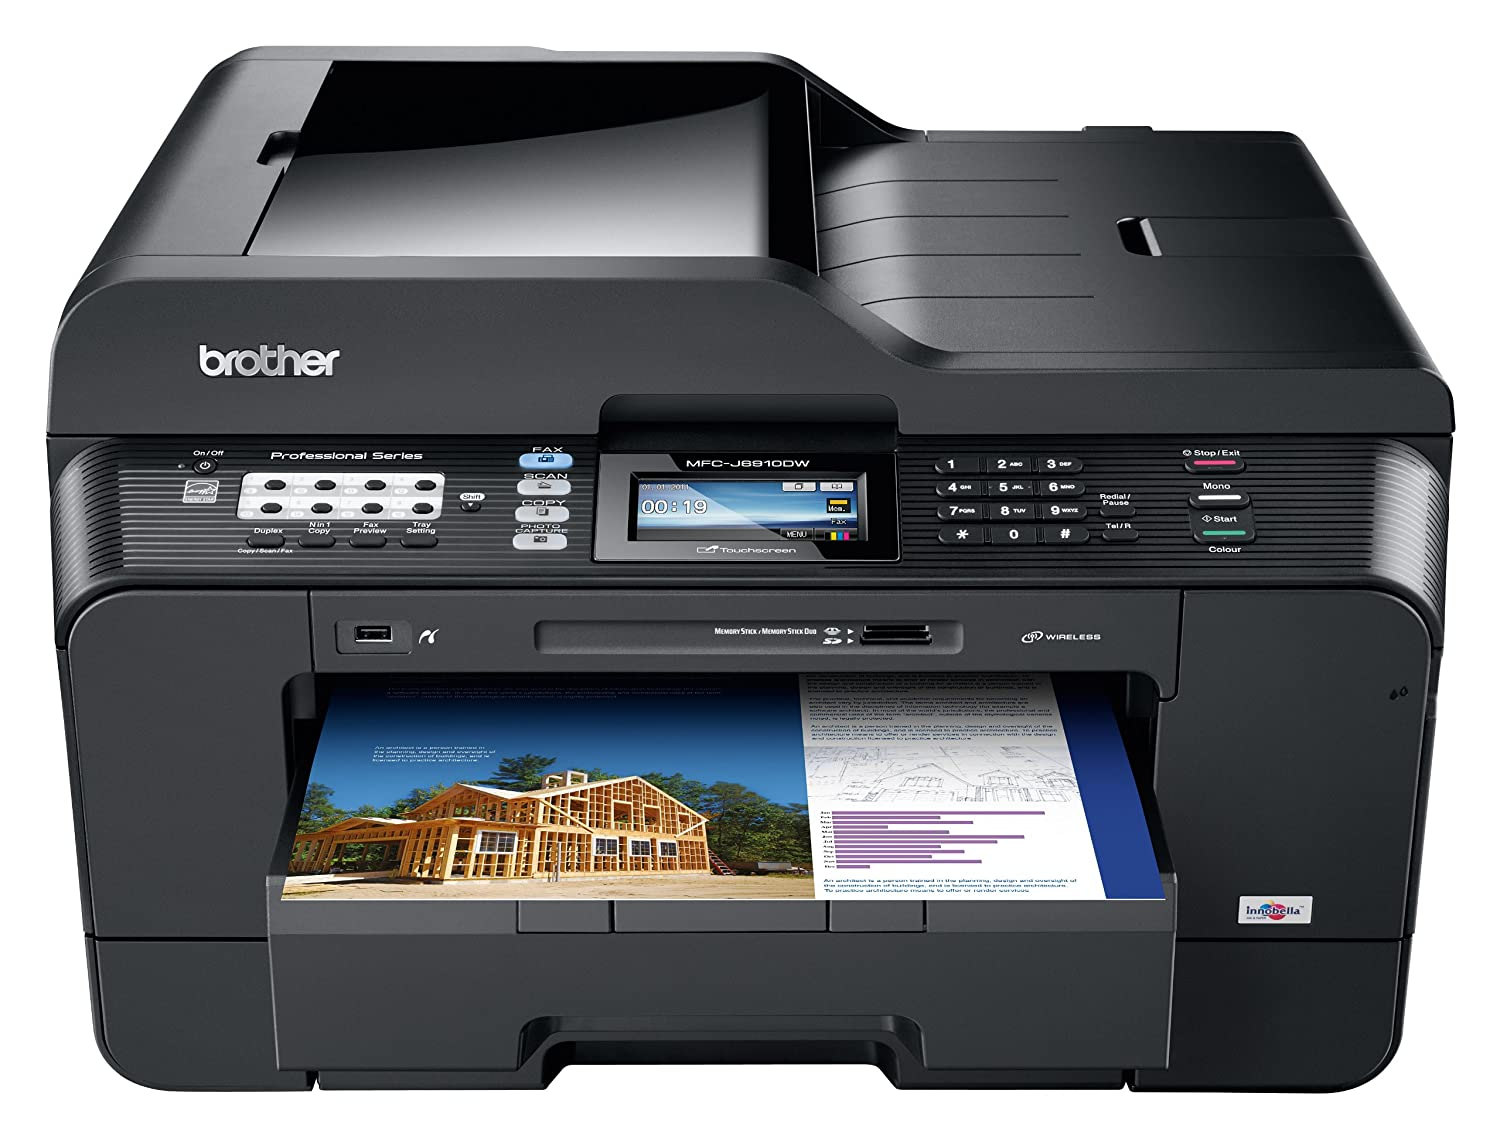 BROTHER MFC-J6910DW PRINTERSCANNER DRIVERS FOR WINDOWS 8